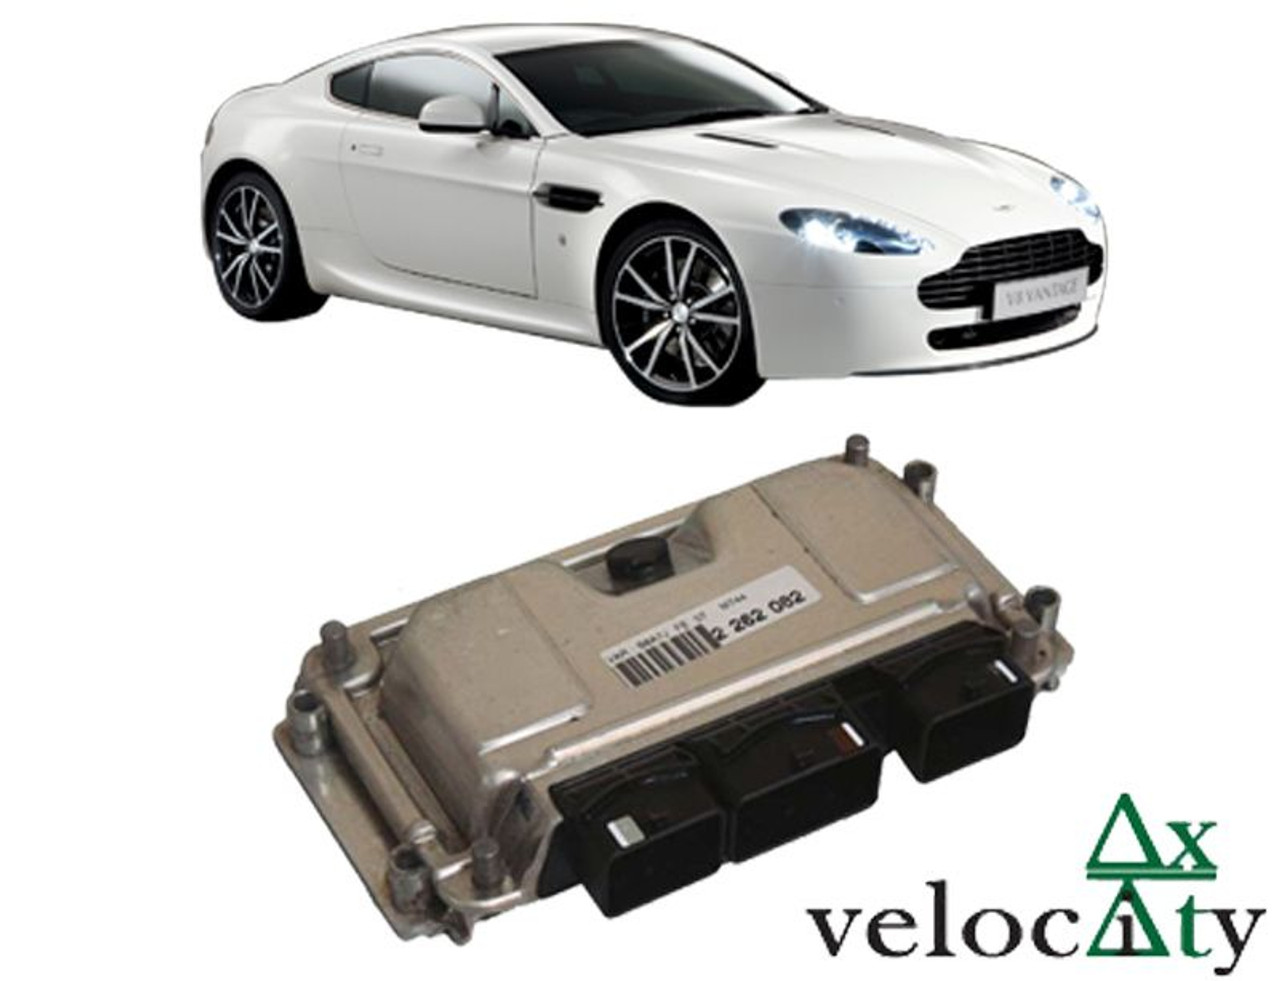 Velocity Ap Ecu Tune For 2006 13 V8 Vantage 4 3l 4 7l